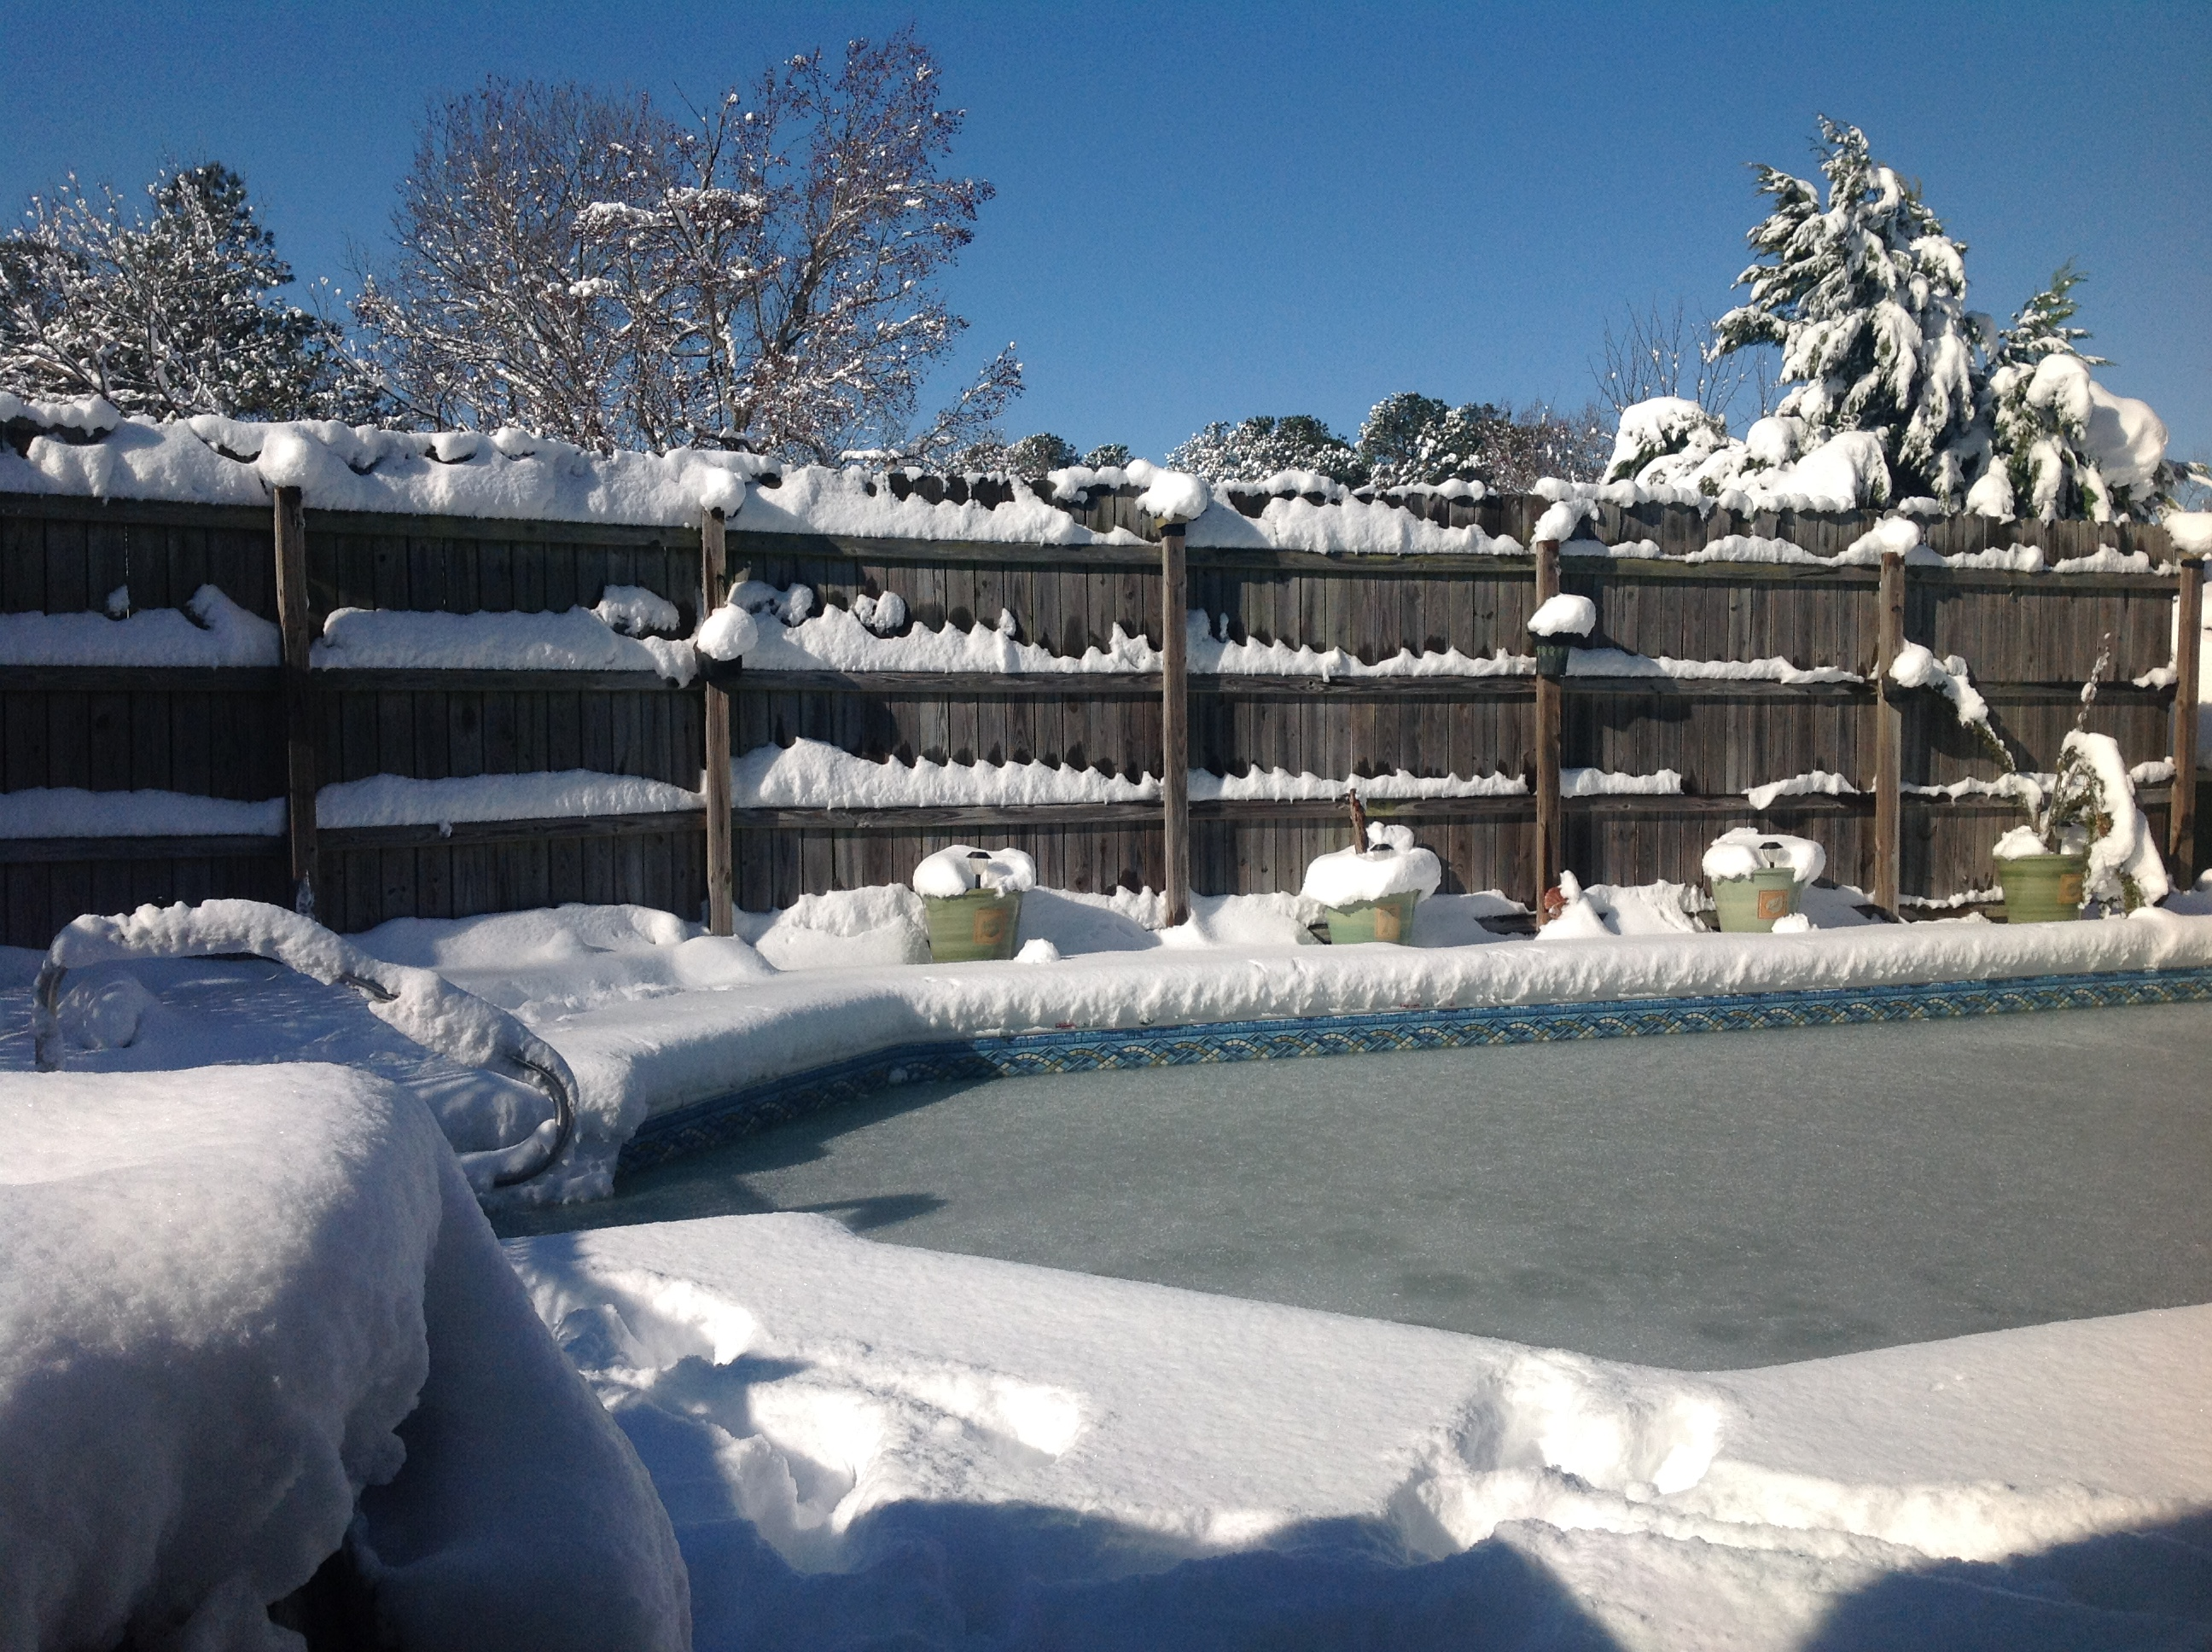 "<div class=""meta image-caption""><div class=""origin-logo origin-image wtvd""><span>WTVD</span></div><span class=""caption-text"">No swimming for a while - 8 inches of snow in Durham! (Linda from Durham - ABC11 Eyewitness)</span></div>"